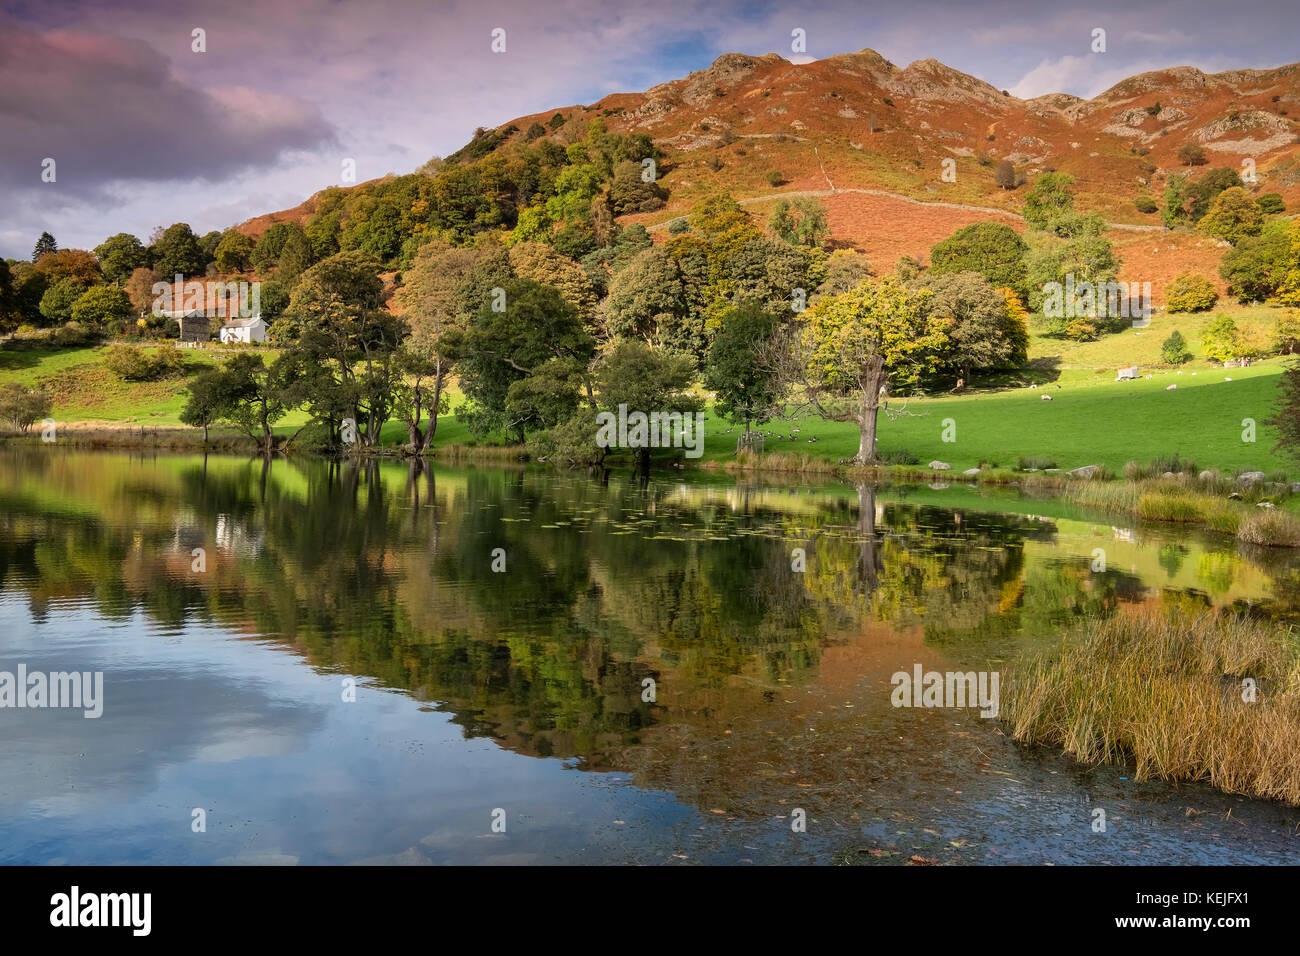 Loughrigg Tarn and Loughrigg Fell in Autumn, Lake District National Park, Cumbria, England, UK - Stock Image